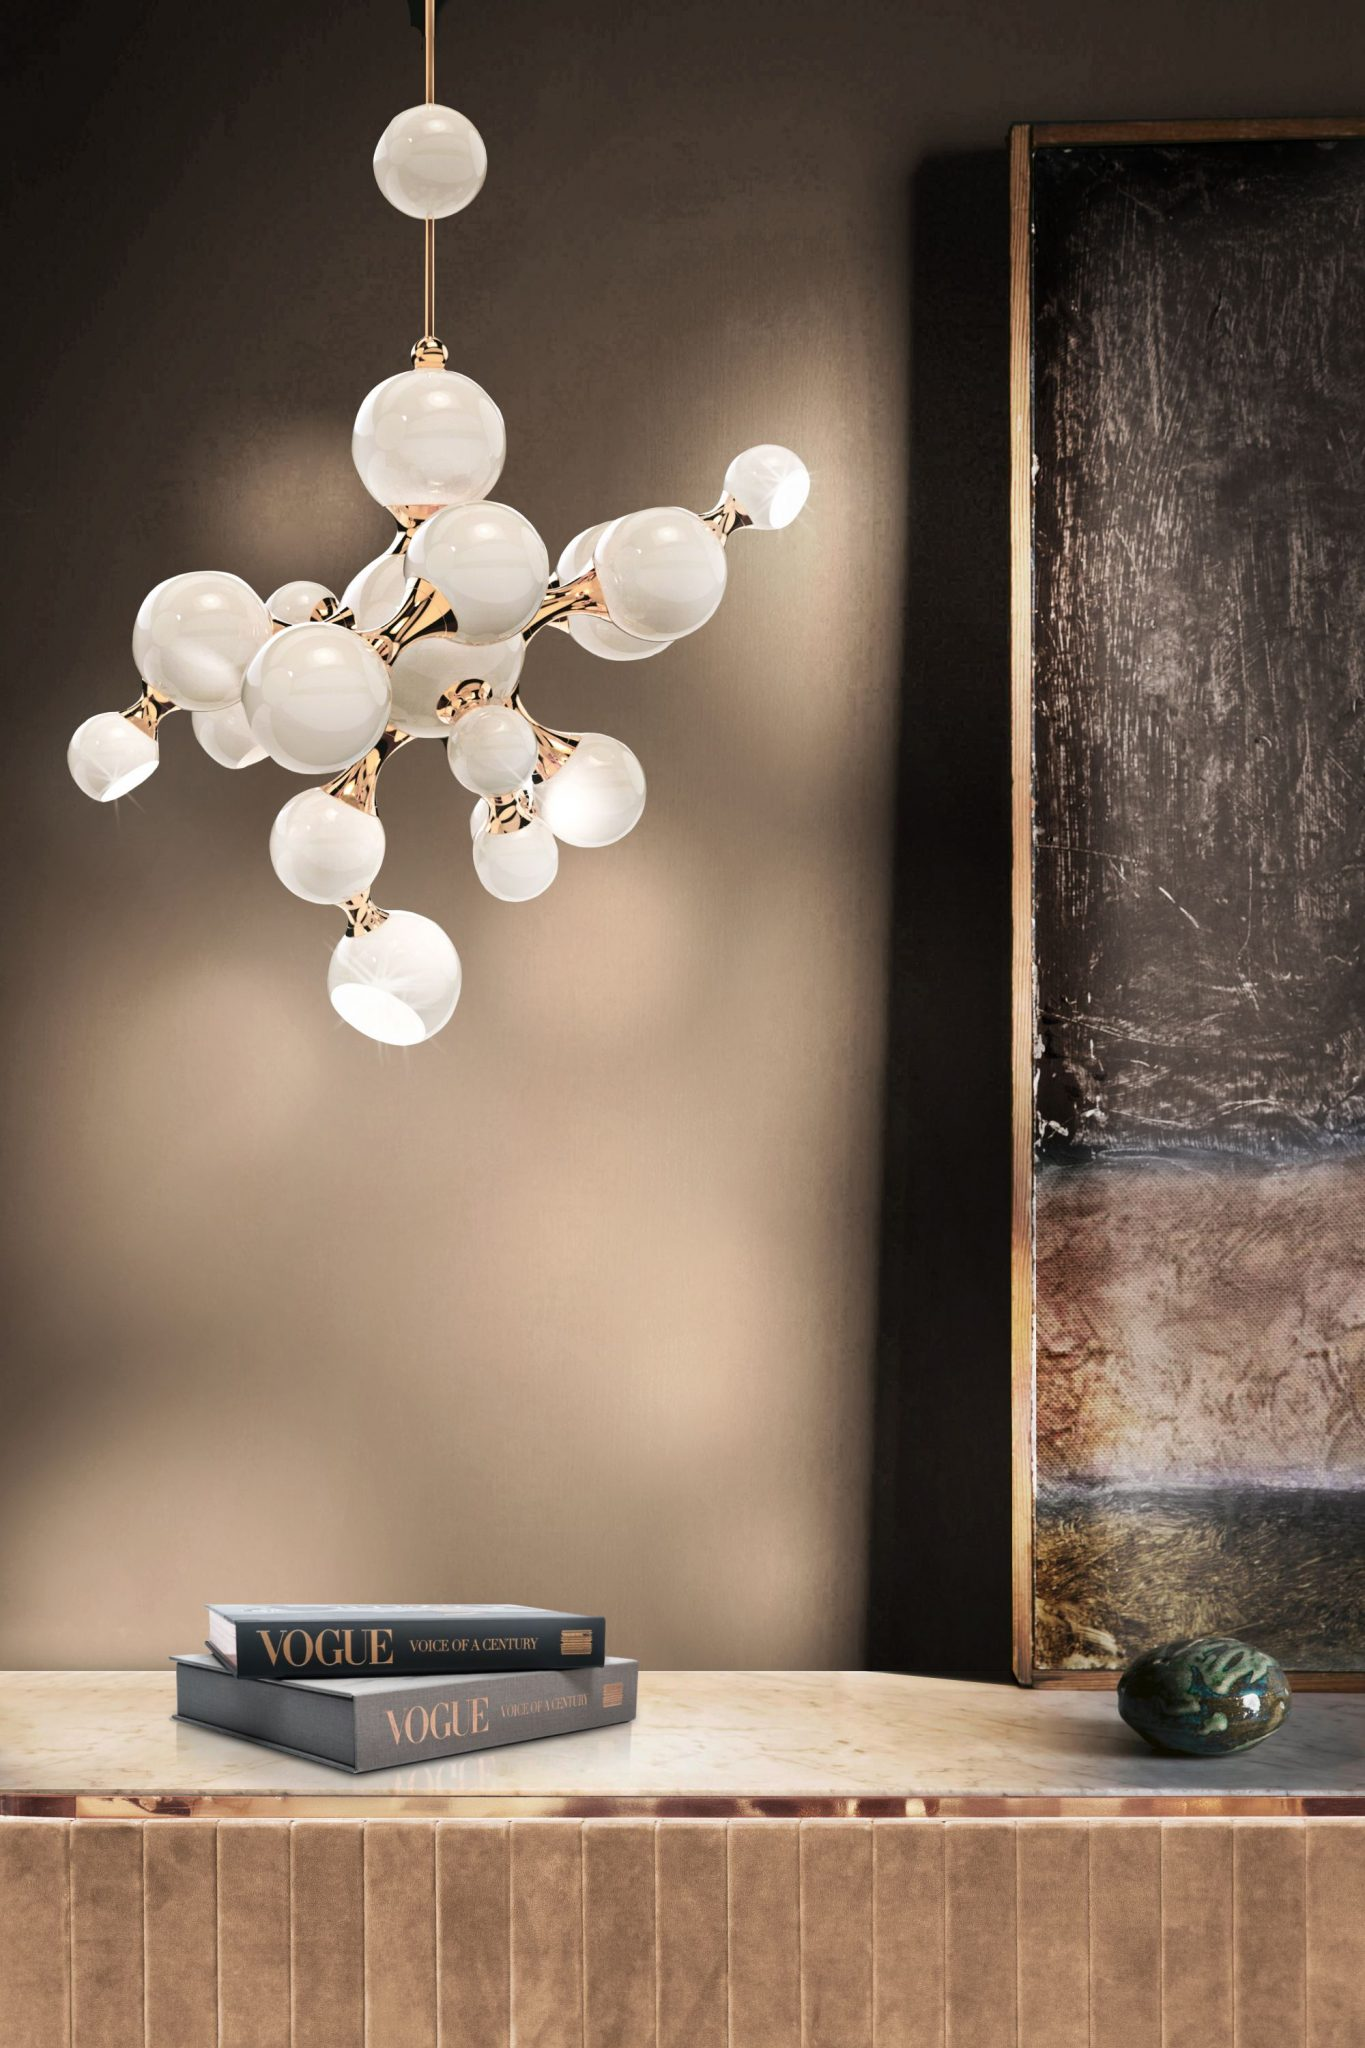 MODERN DESIGN PENDANT LAMP INSPIRED BY SCIENCE